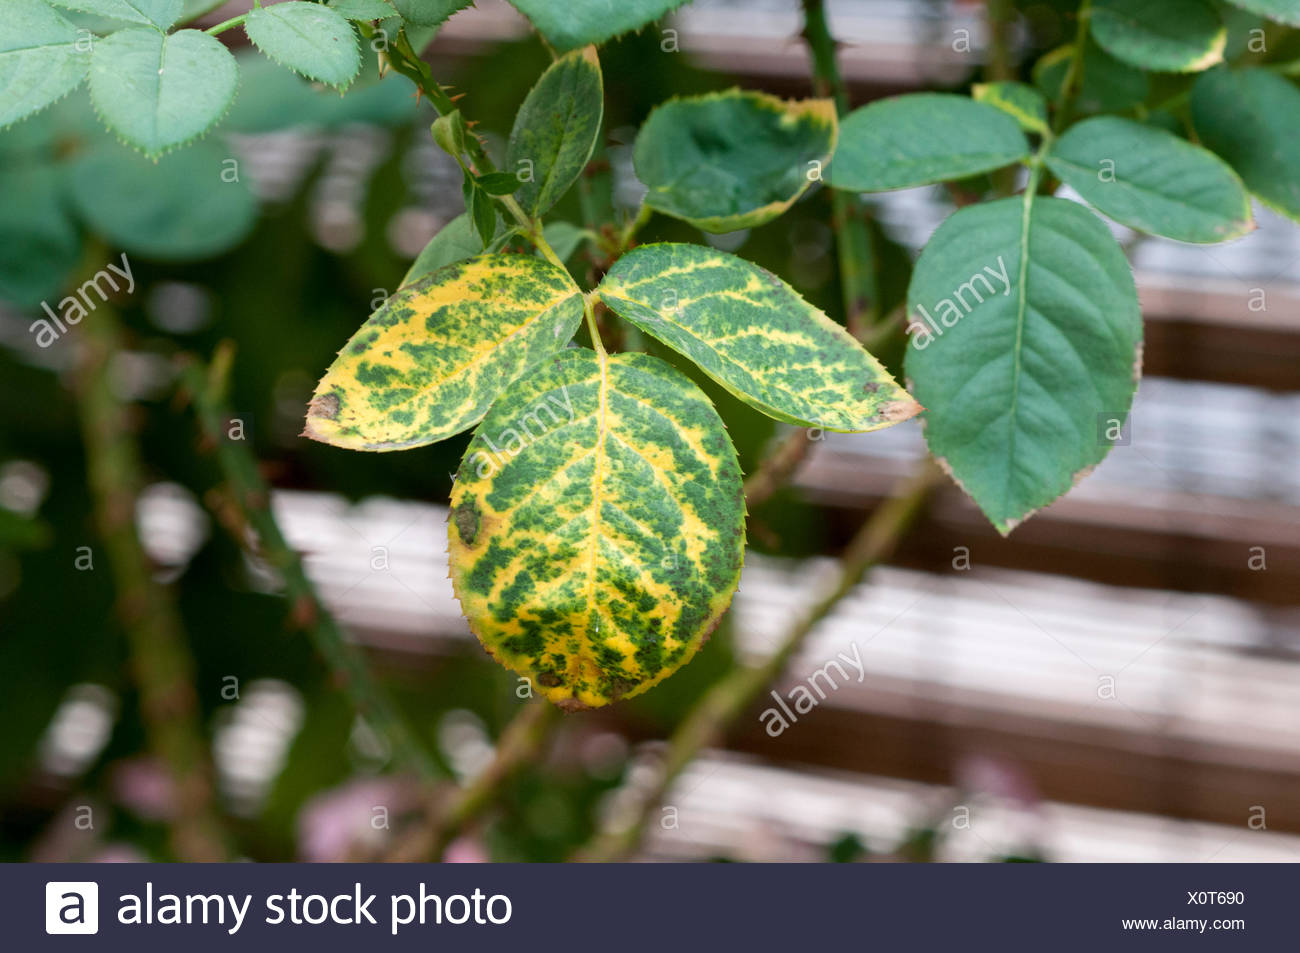 Rose leaf with Mosaic Virus symptoms. Net-like appearance with vein clearing shows infection by complex of virus pathogens. - Stock Image